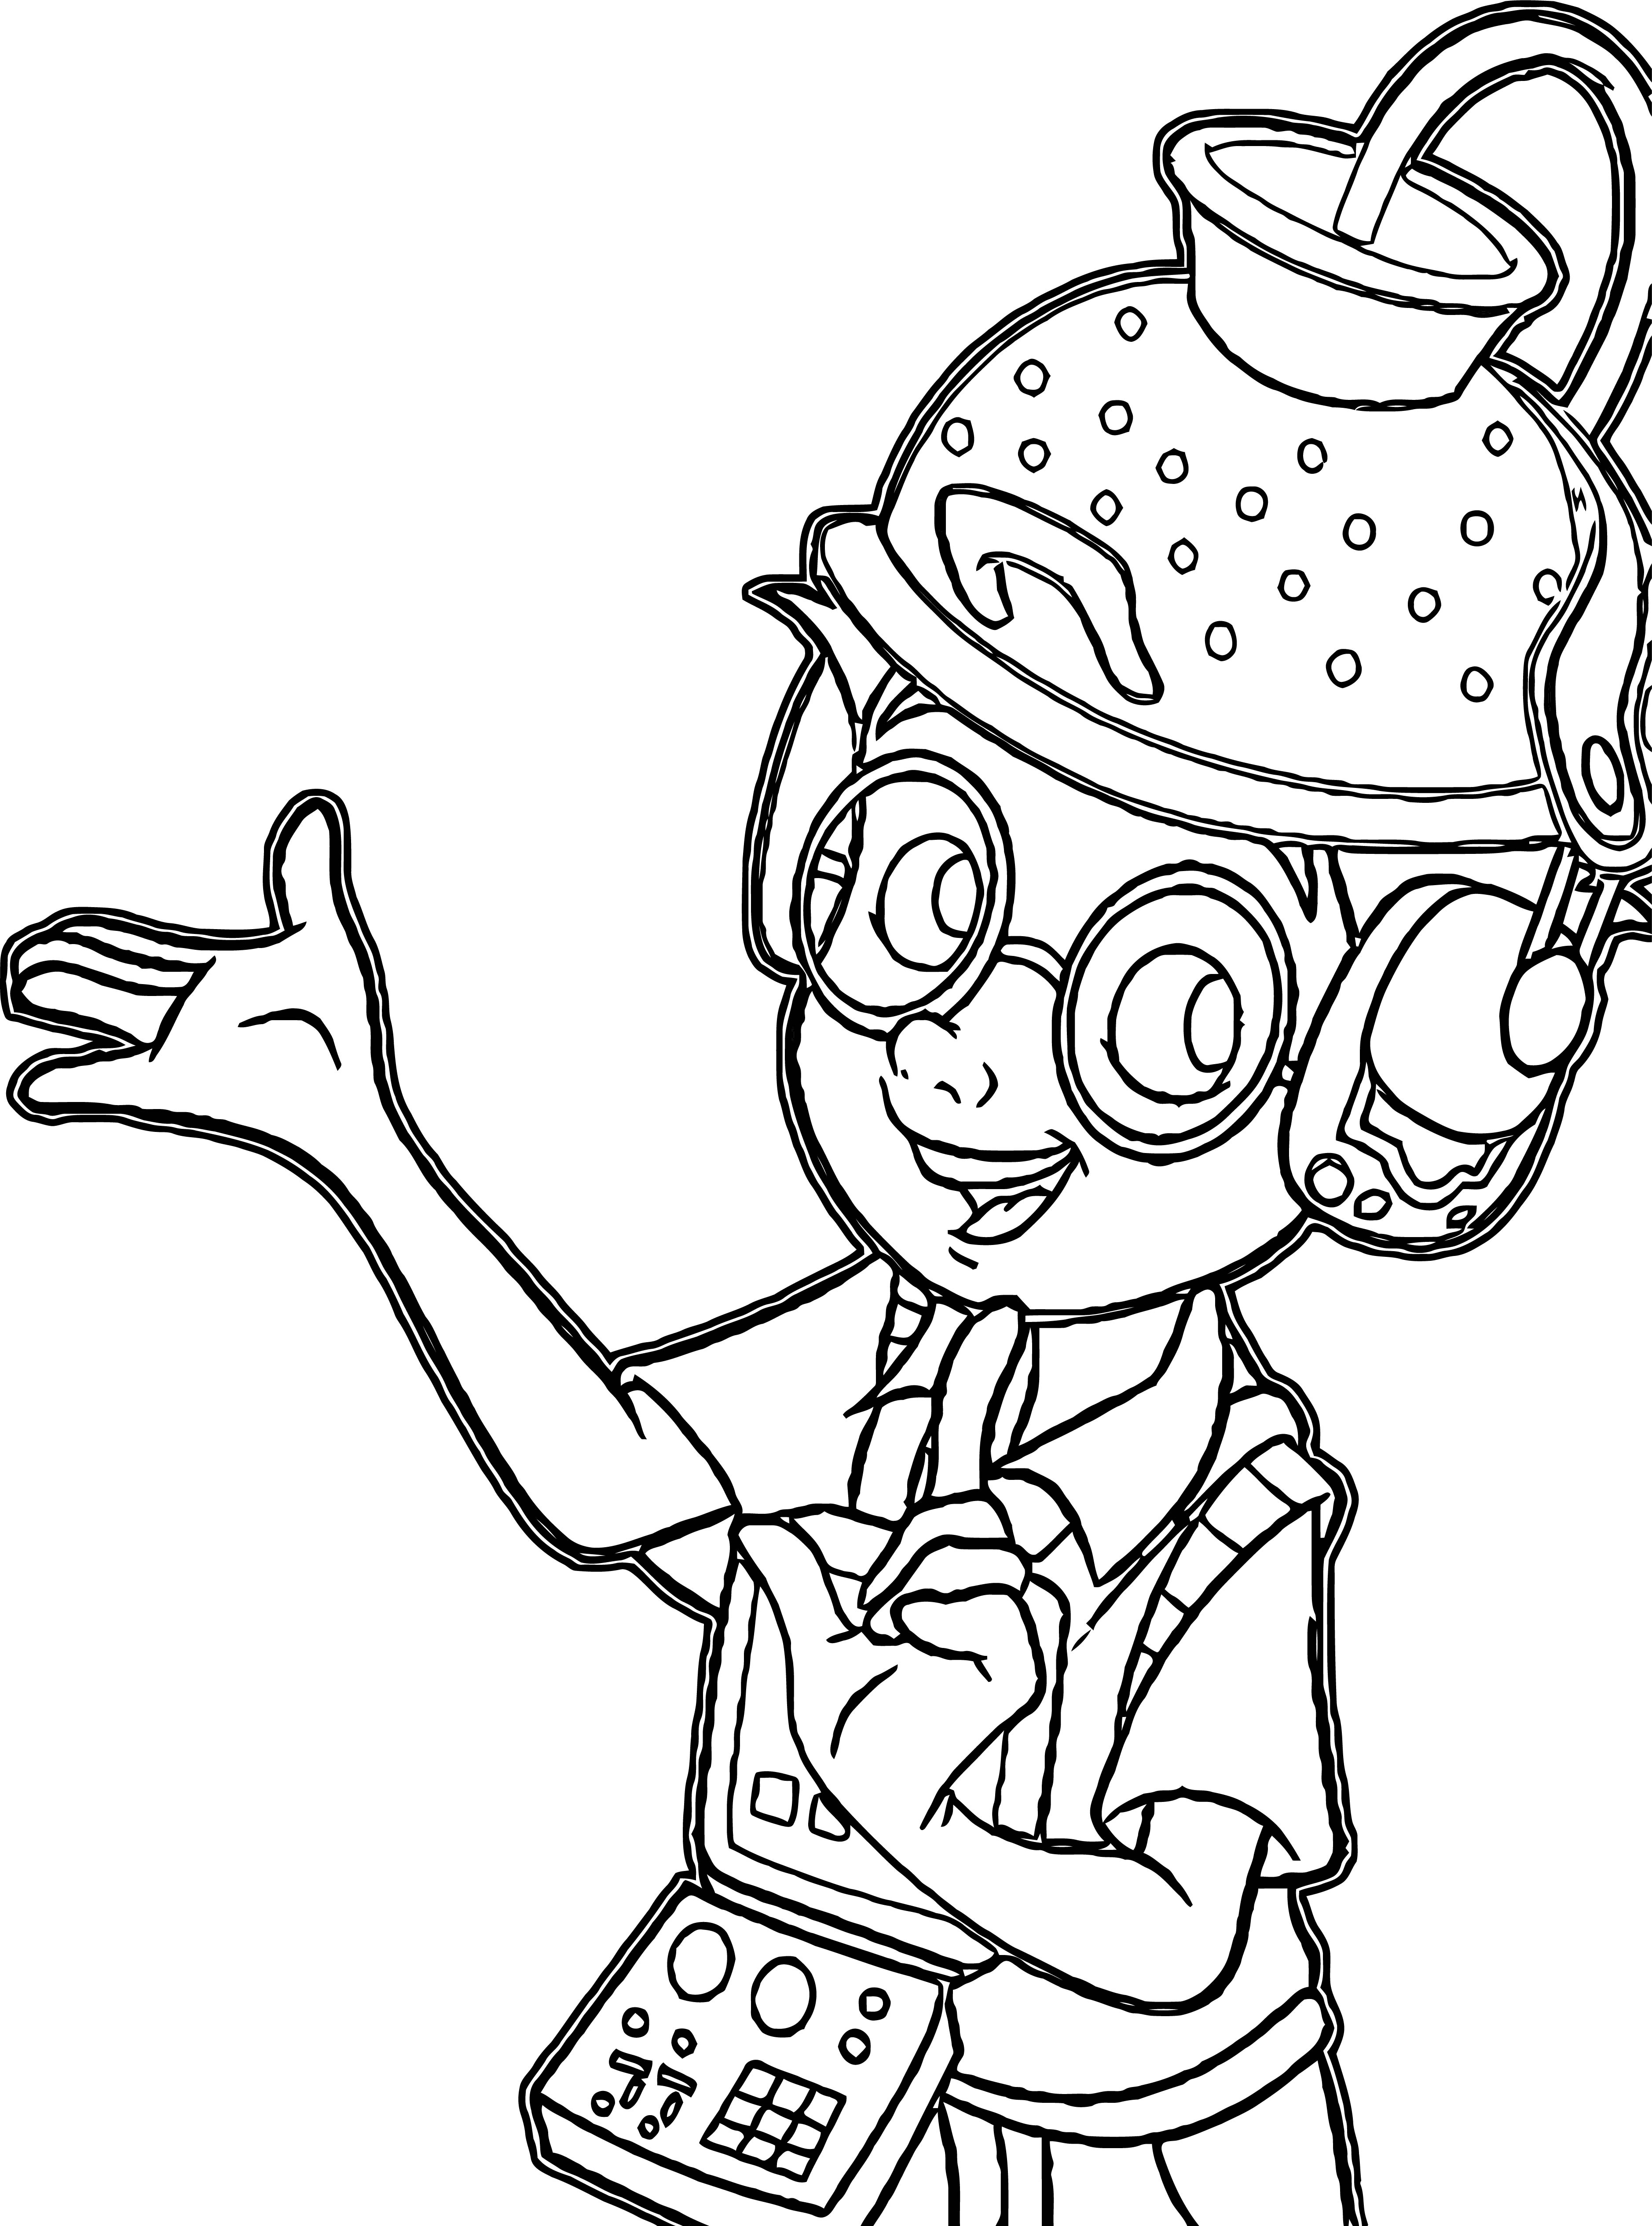 Meet The Robinsons Coloring Page 18